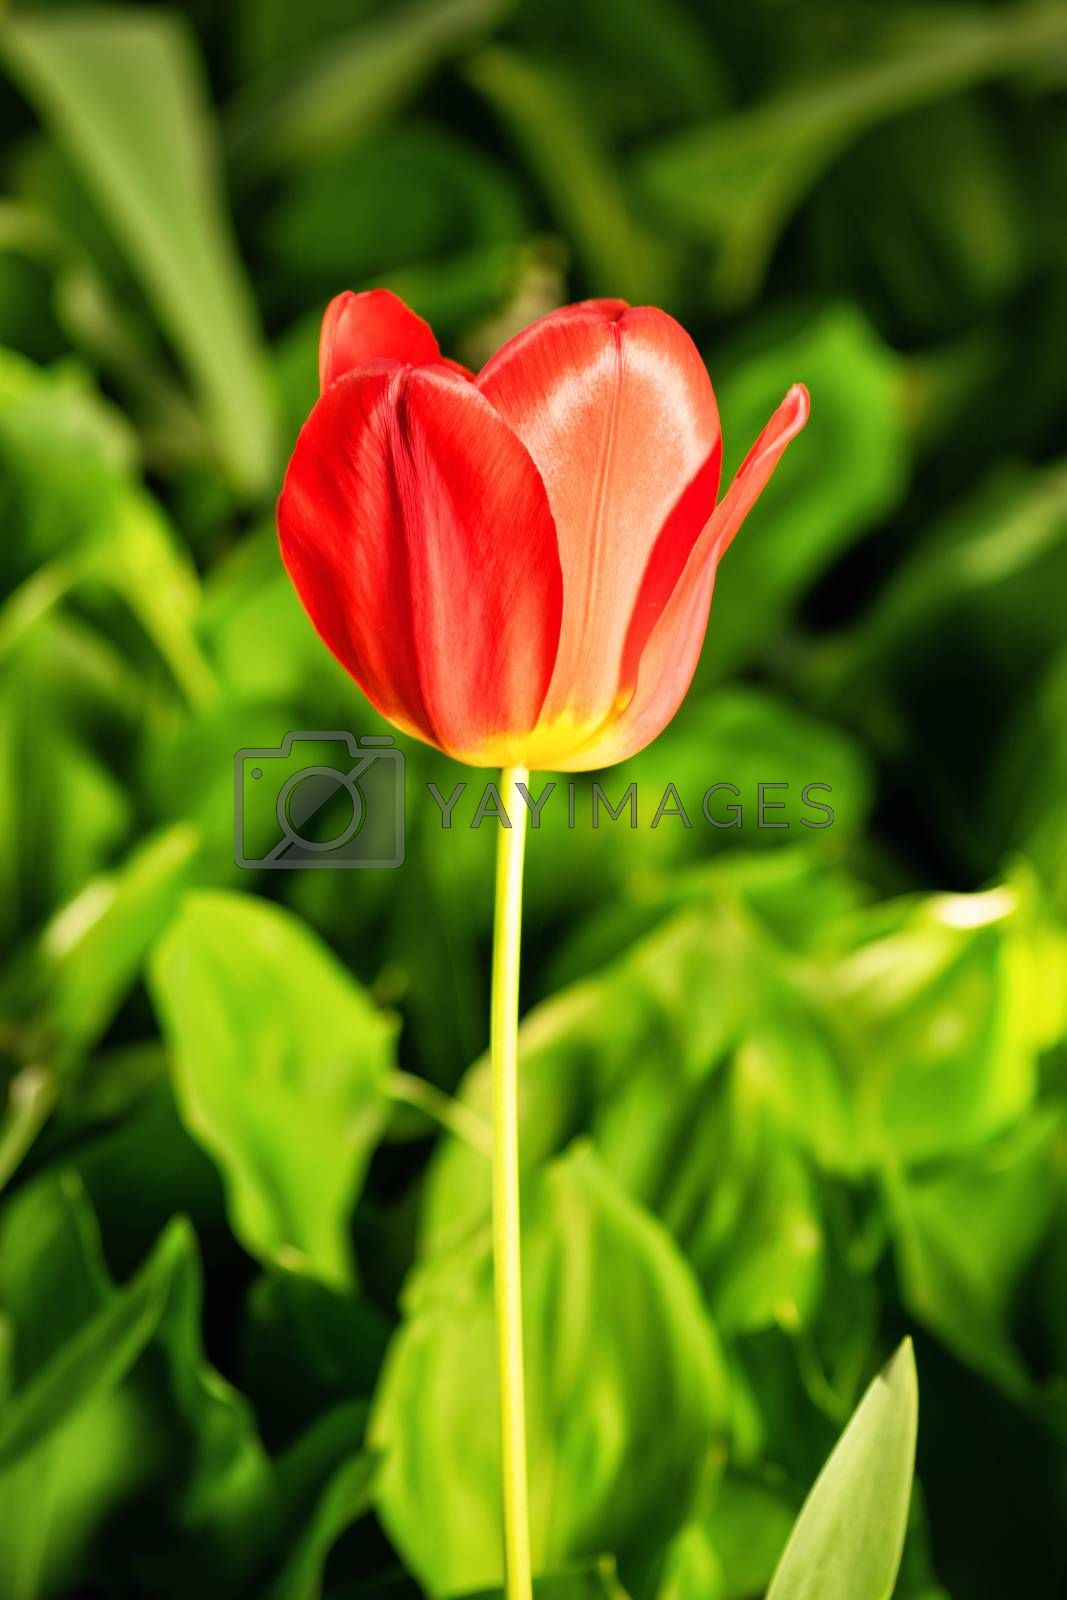 A close up shot of a red tulip in bloom with background of greenery.